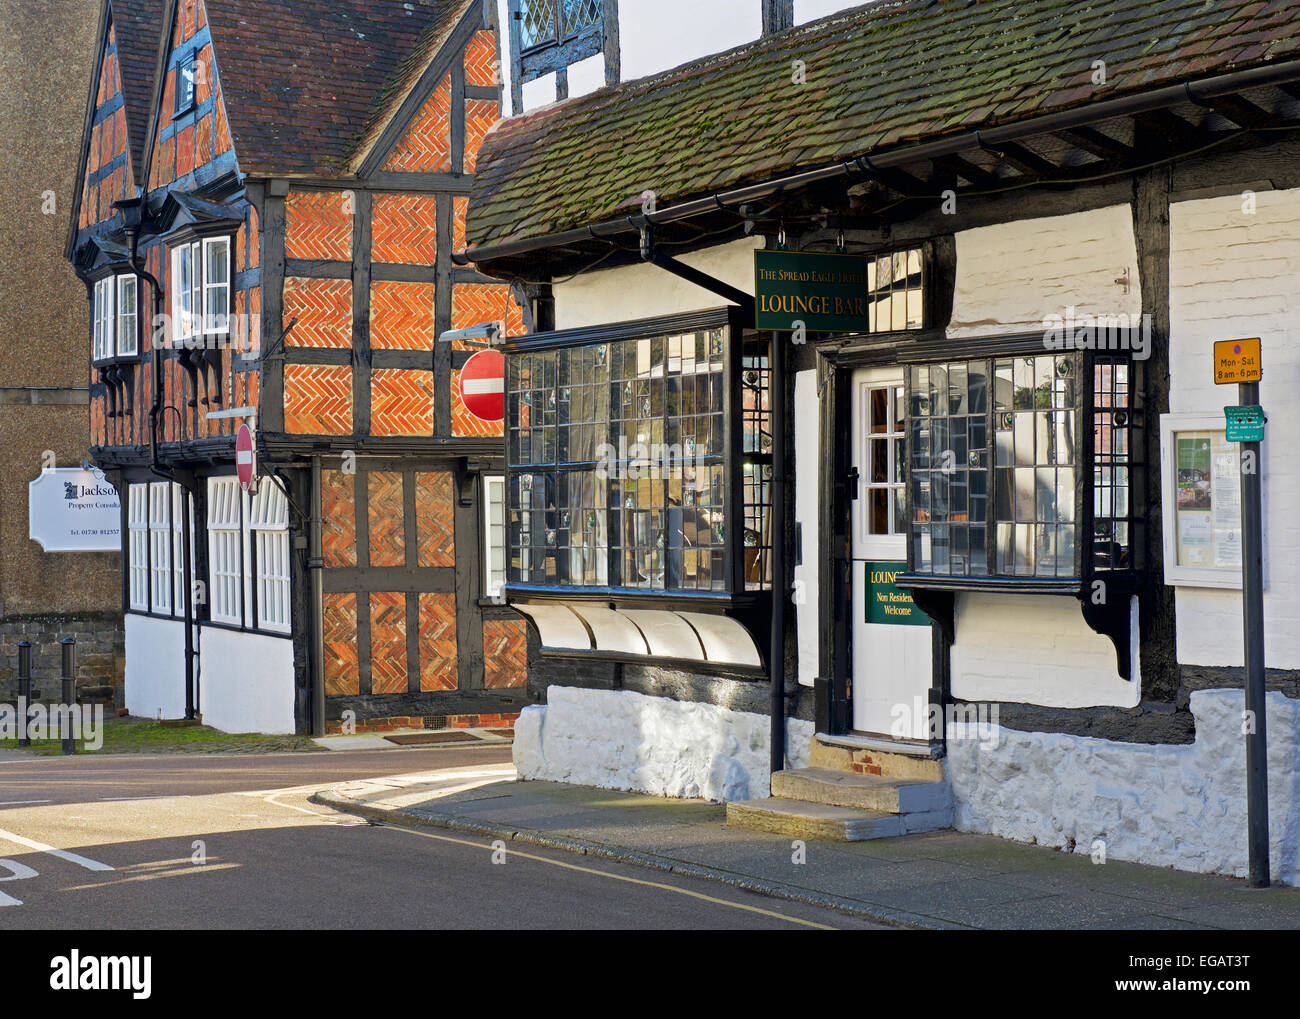 Street of half-timbered buildings in Midhurst, West Sussex, England UK - Stock Image